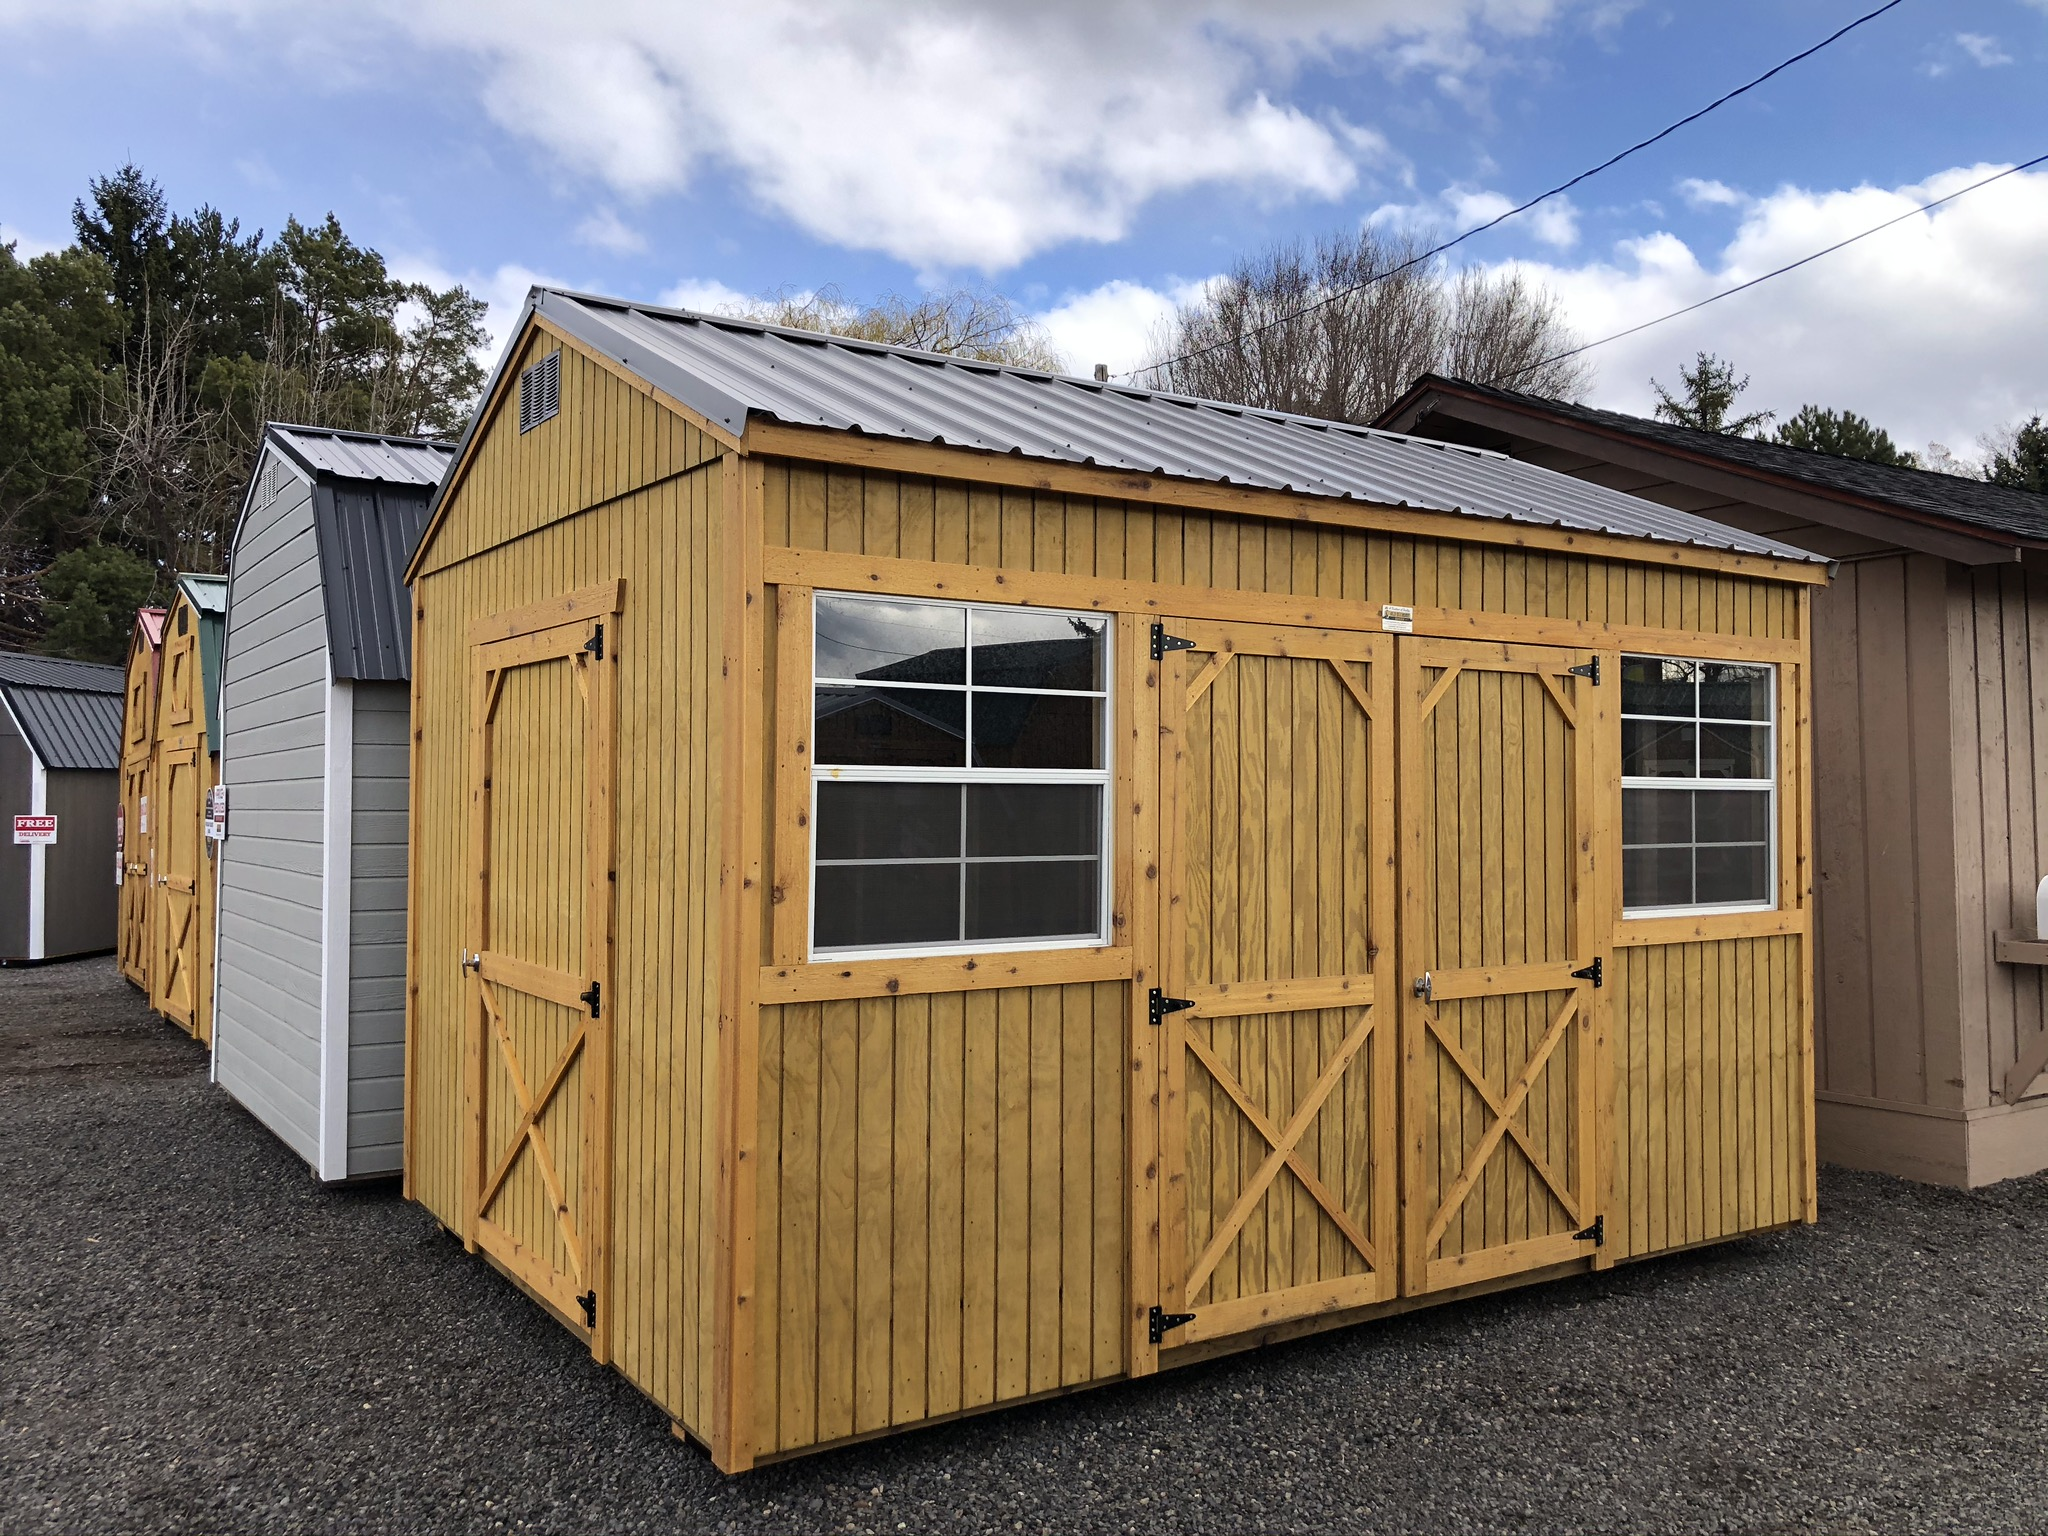 Central Oregon Sheds - Old Hickory Shed Dealer servicing all of Central Oregon.  Man caves, she shed